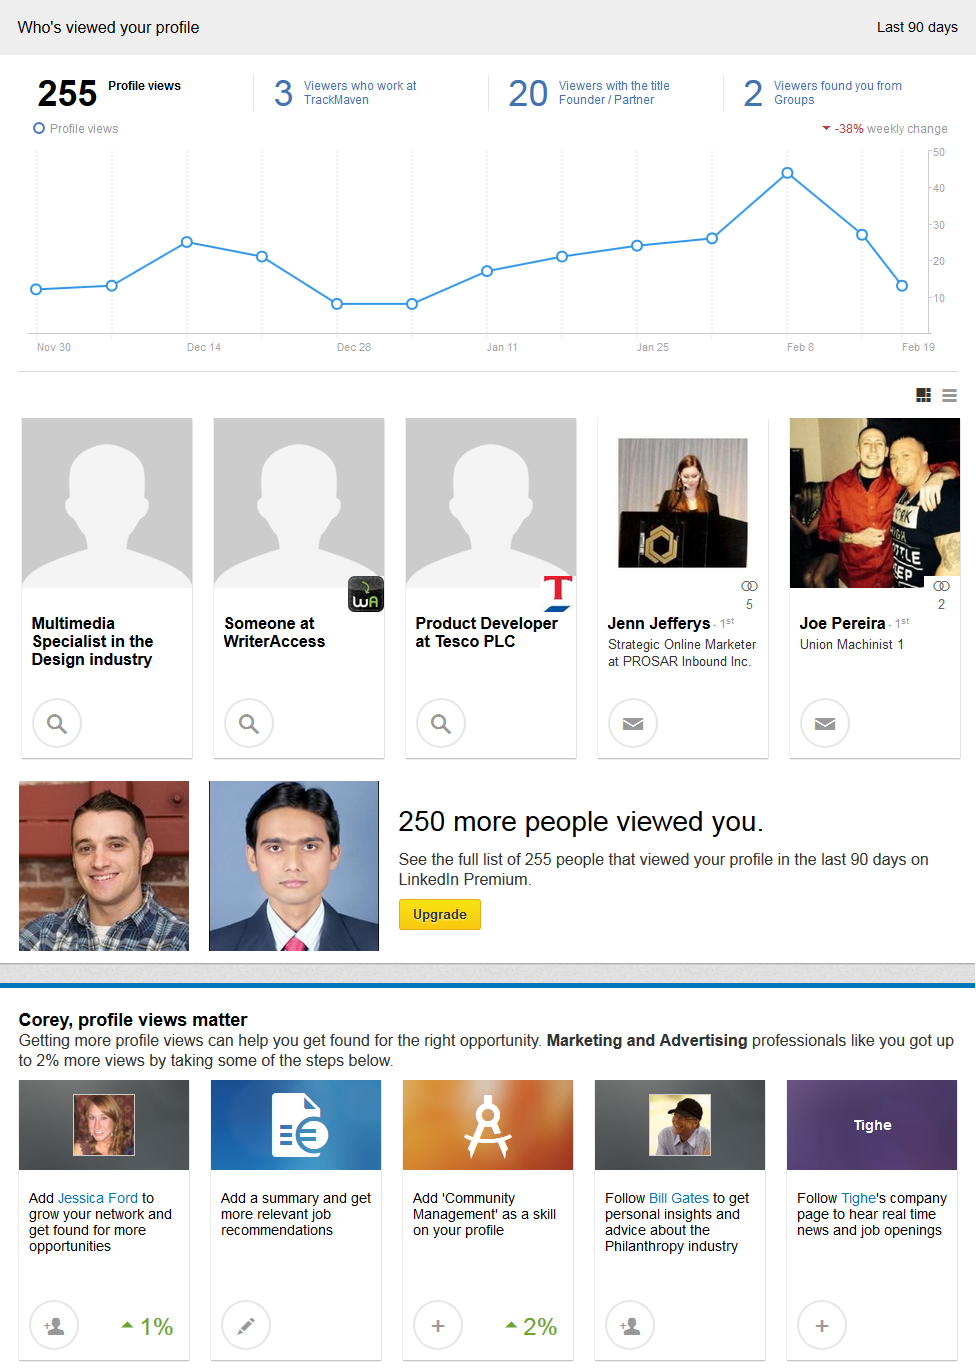 Good News for Creepers: LinkedIn Upgrades